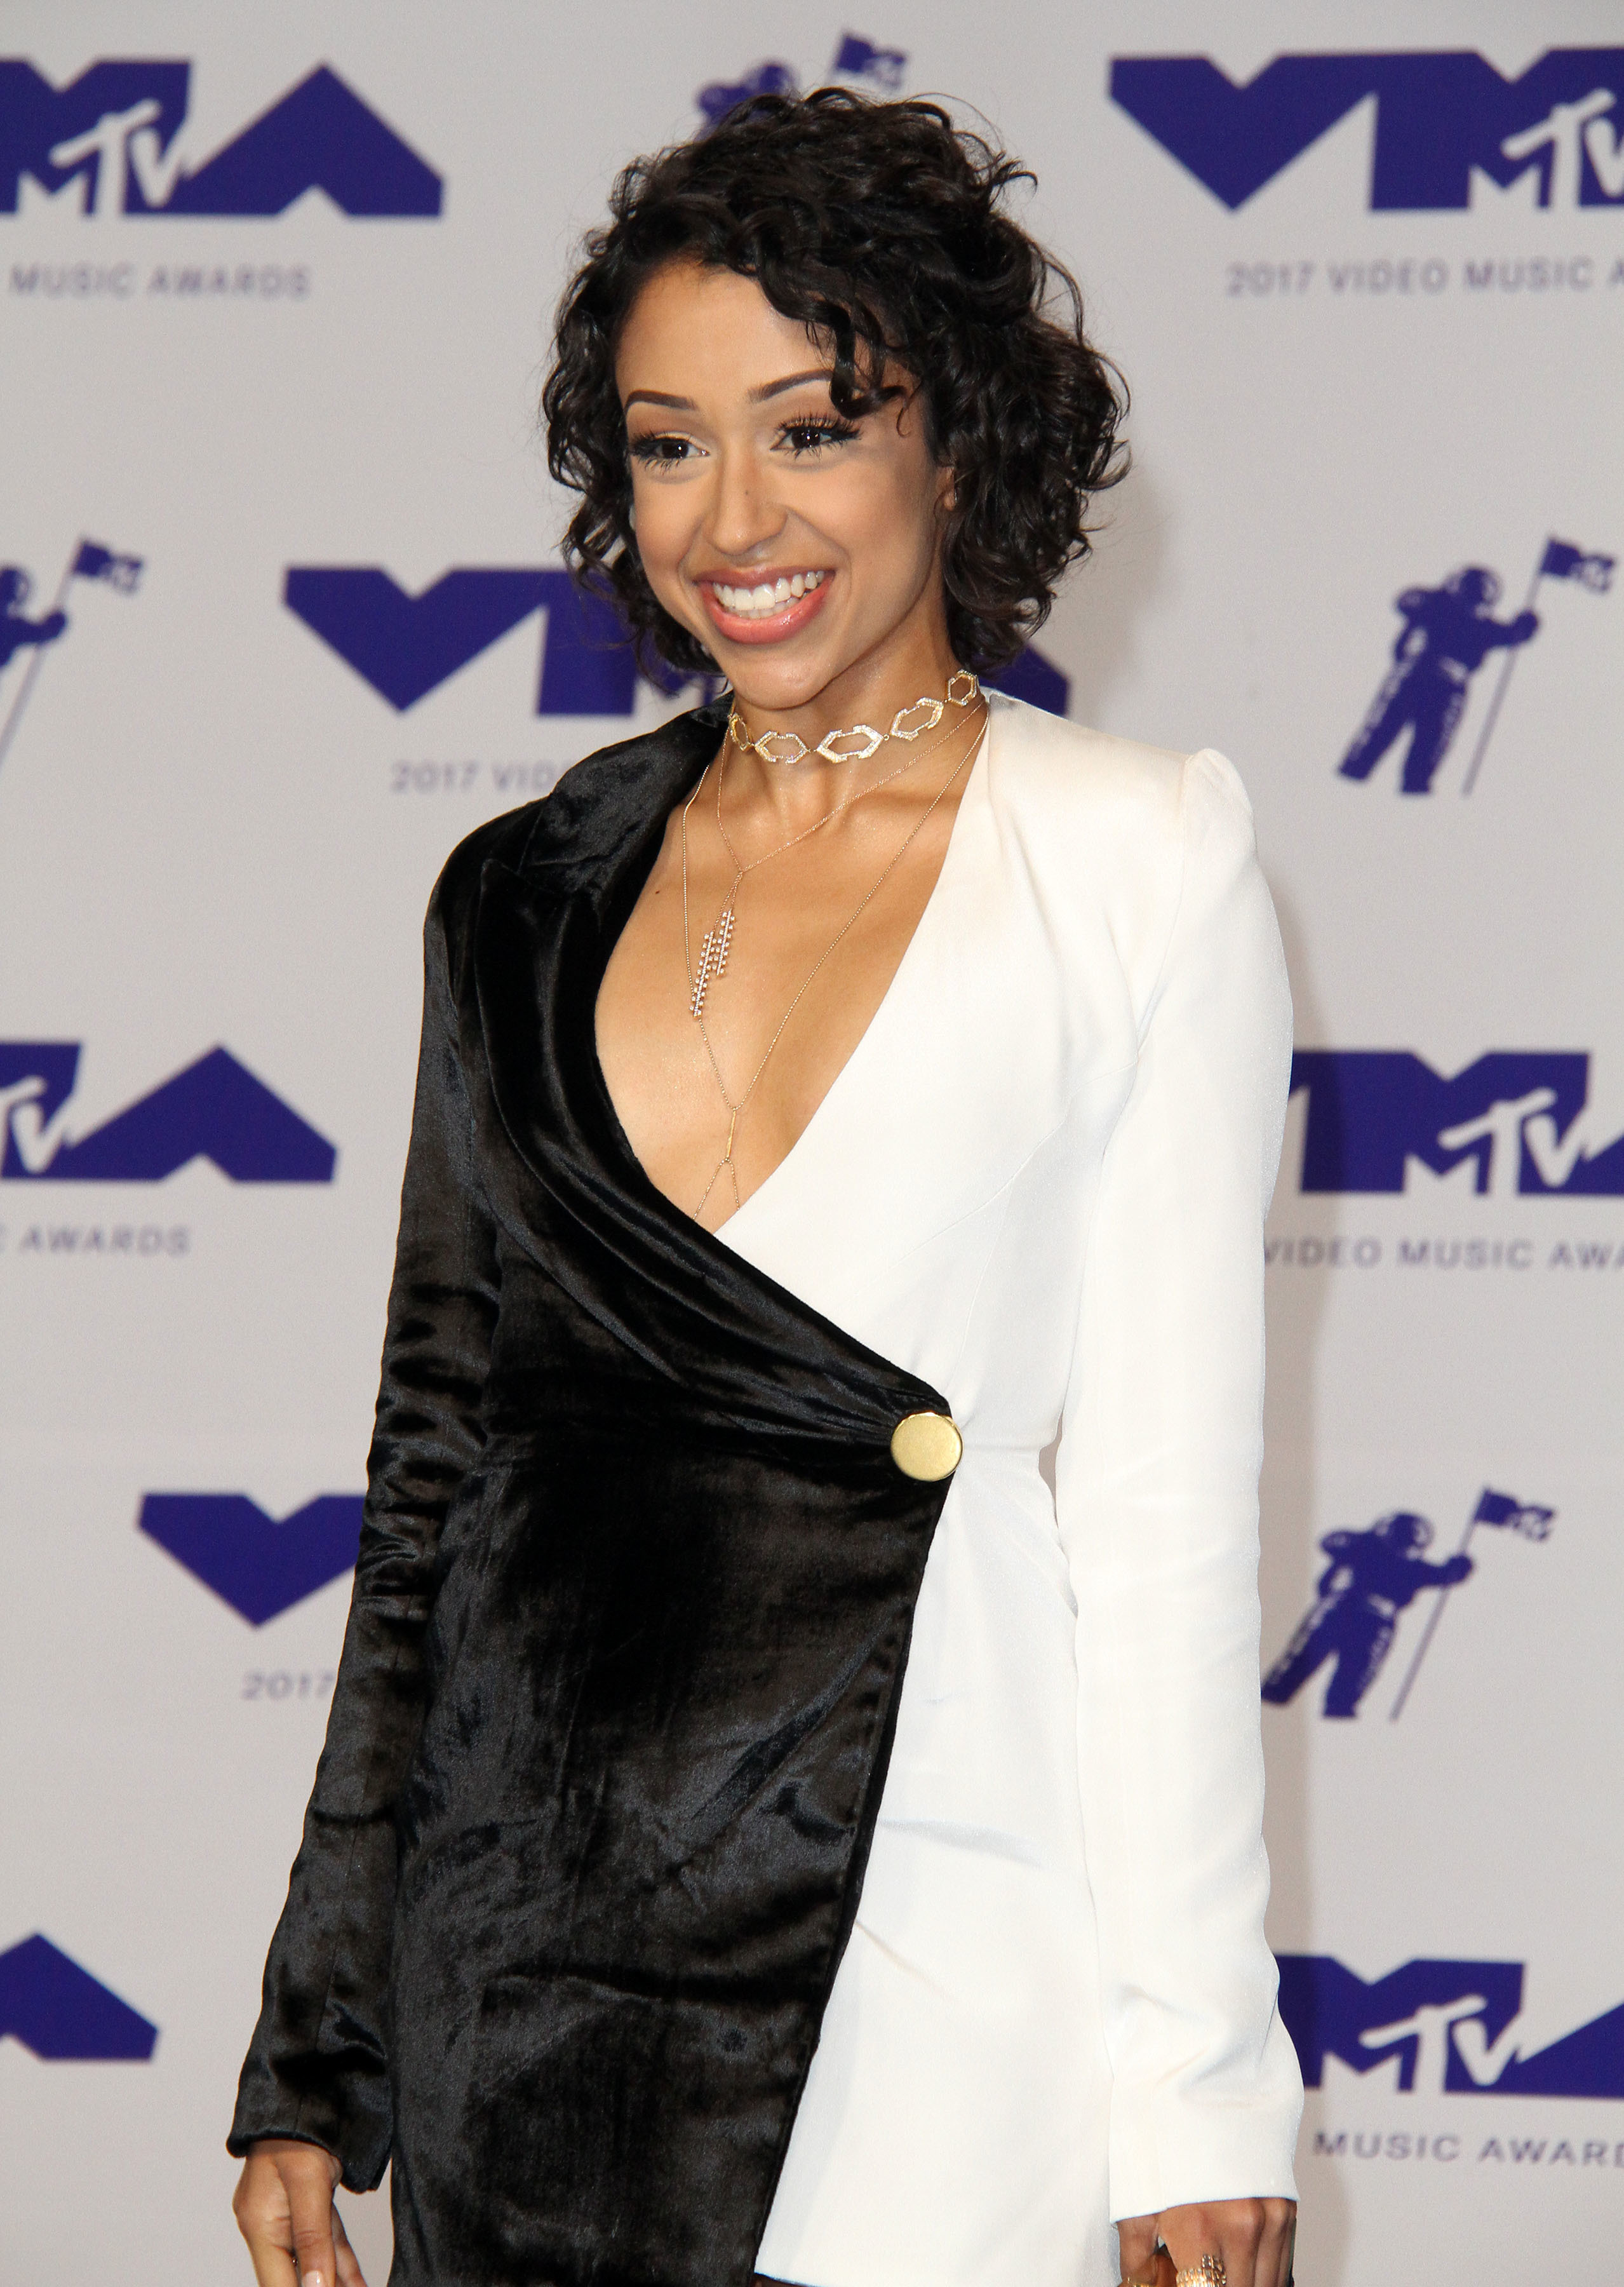 MTV Video Music Awards (VMA) 2017 Arrivals held at the Forum in Inglewood, California.  Featuring: Liza Koshy Where: Los Angeles, California, United States When: 26 Aug 2017 Credit: Adriana M. Barraza/WENN.com